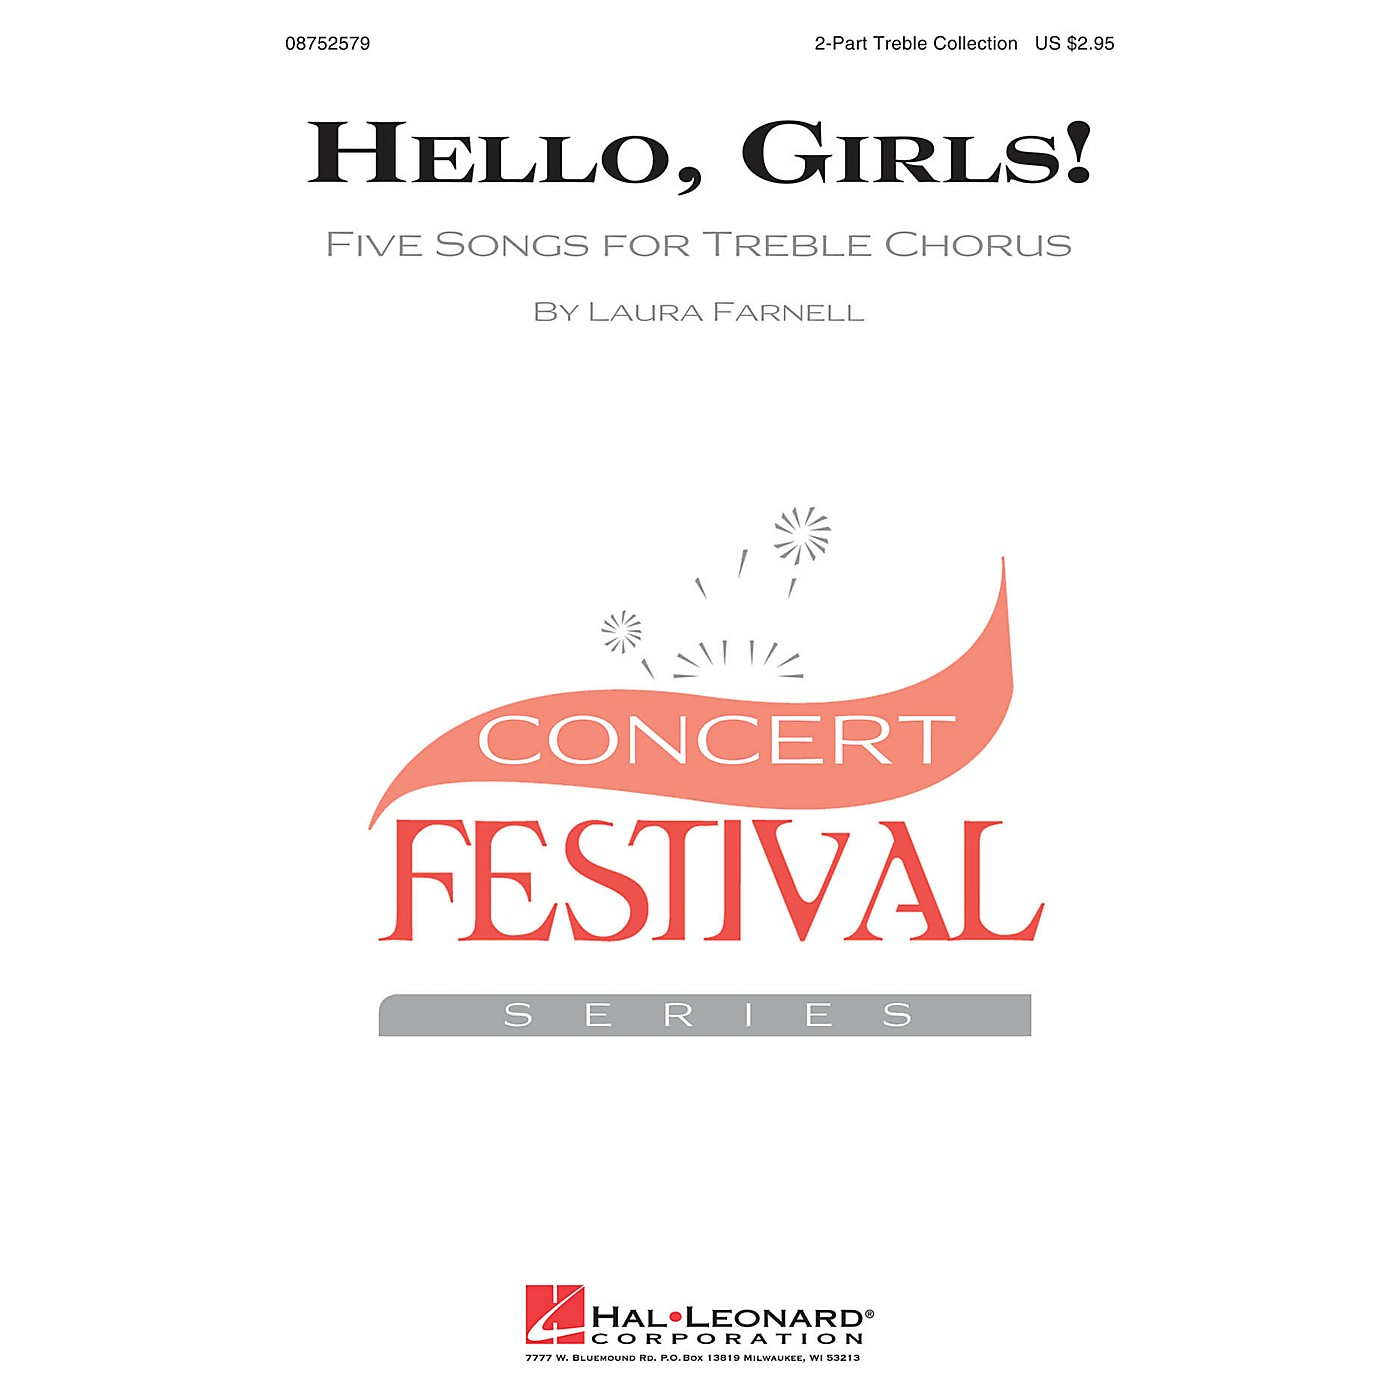 Hal Leonard Hello, Girls! (Five Songs for Treble Chorus) 2-PART TREBLE COLLECTION arranged by Laura Farnell thumbnail